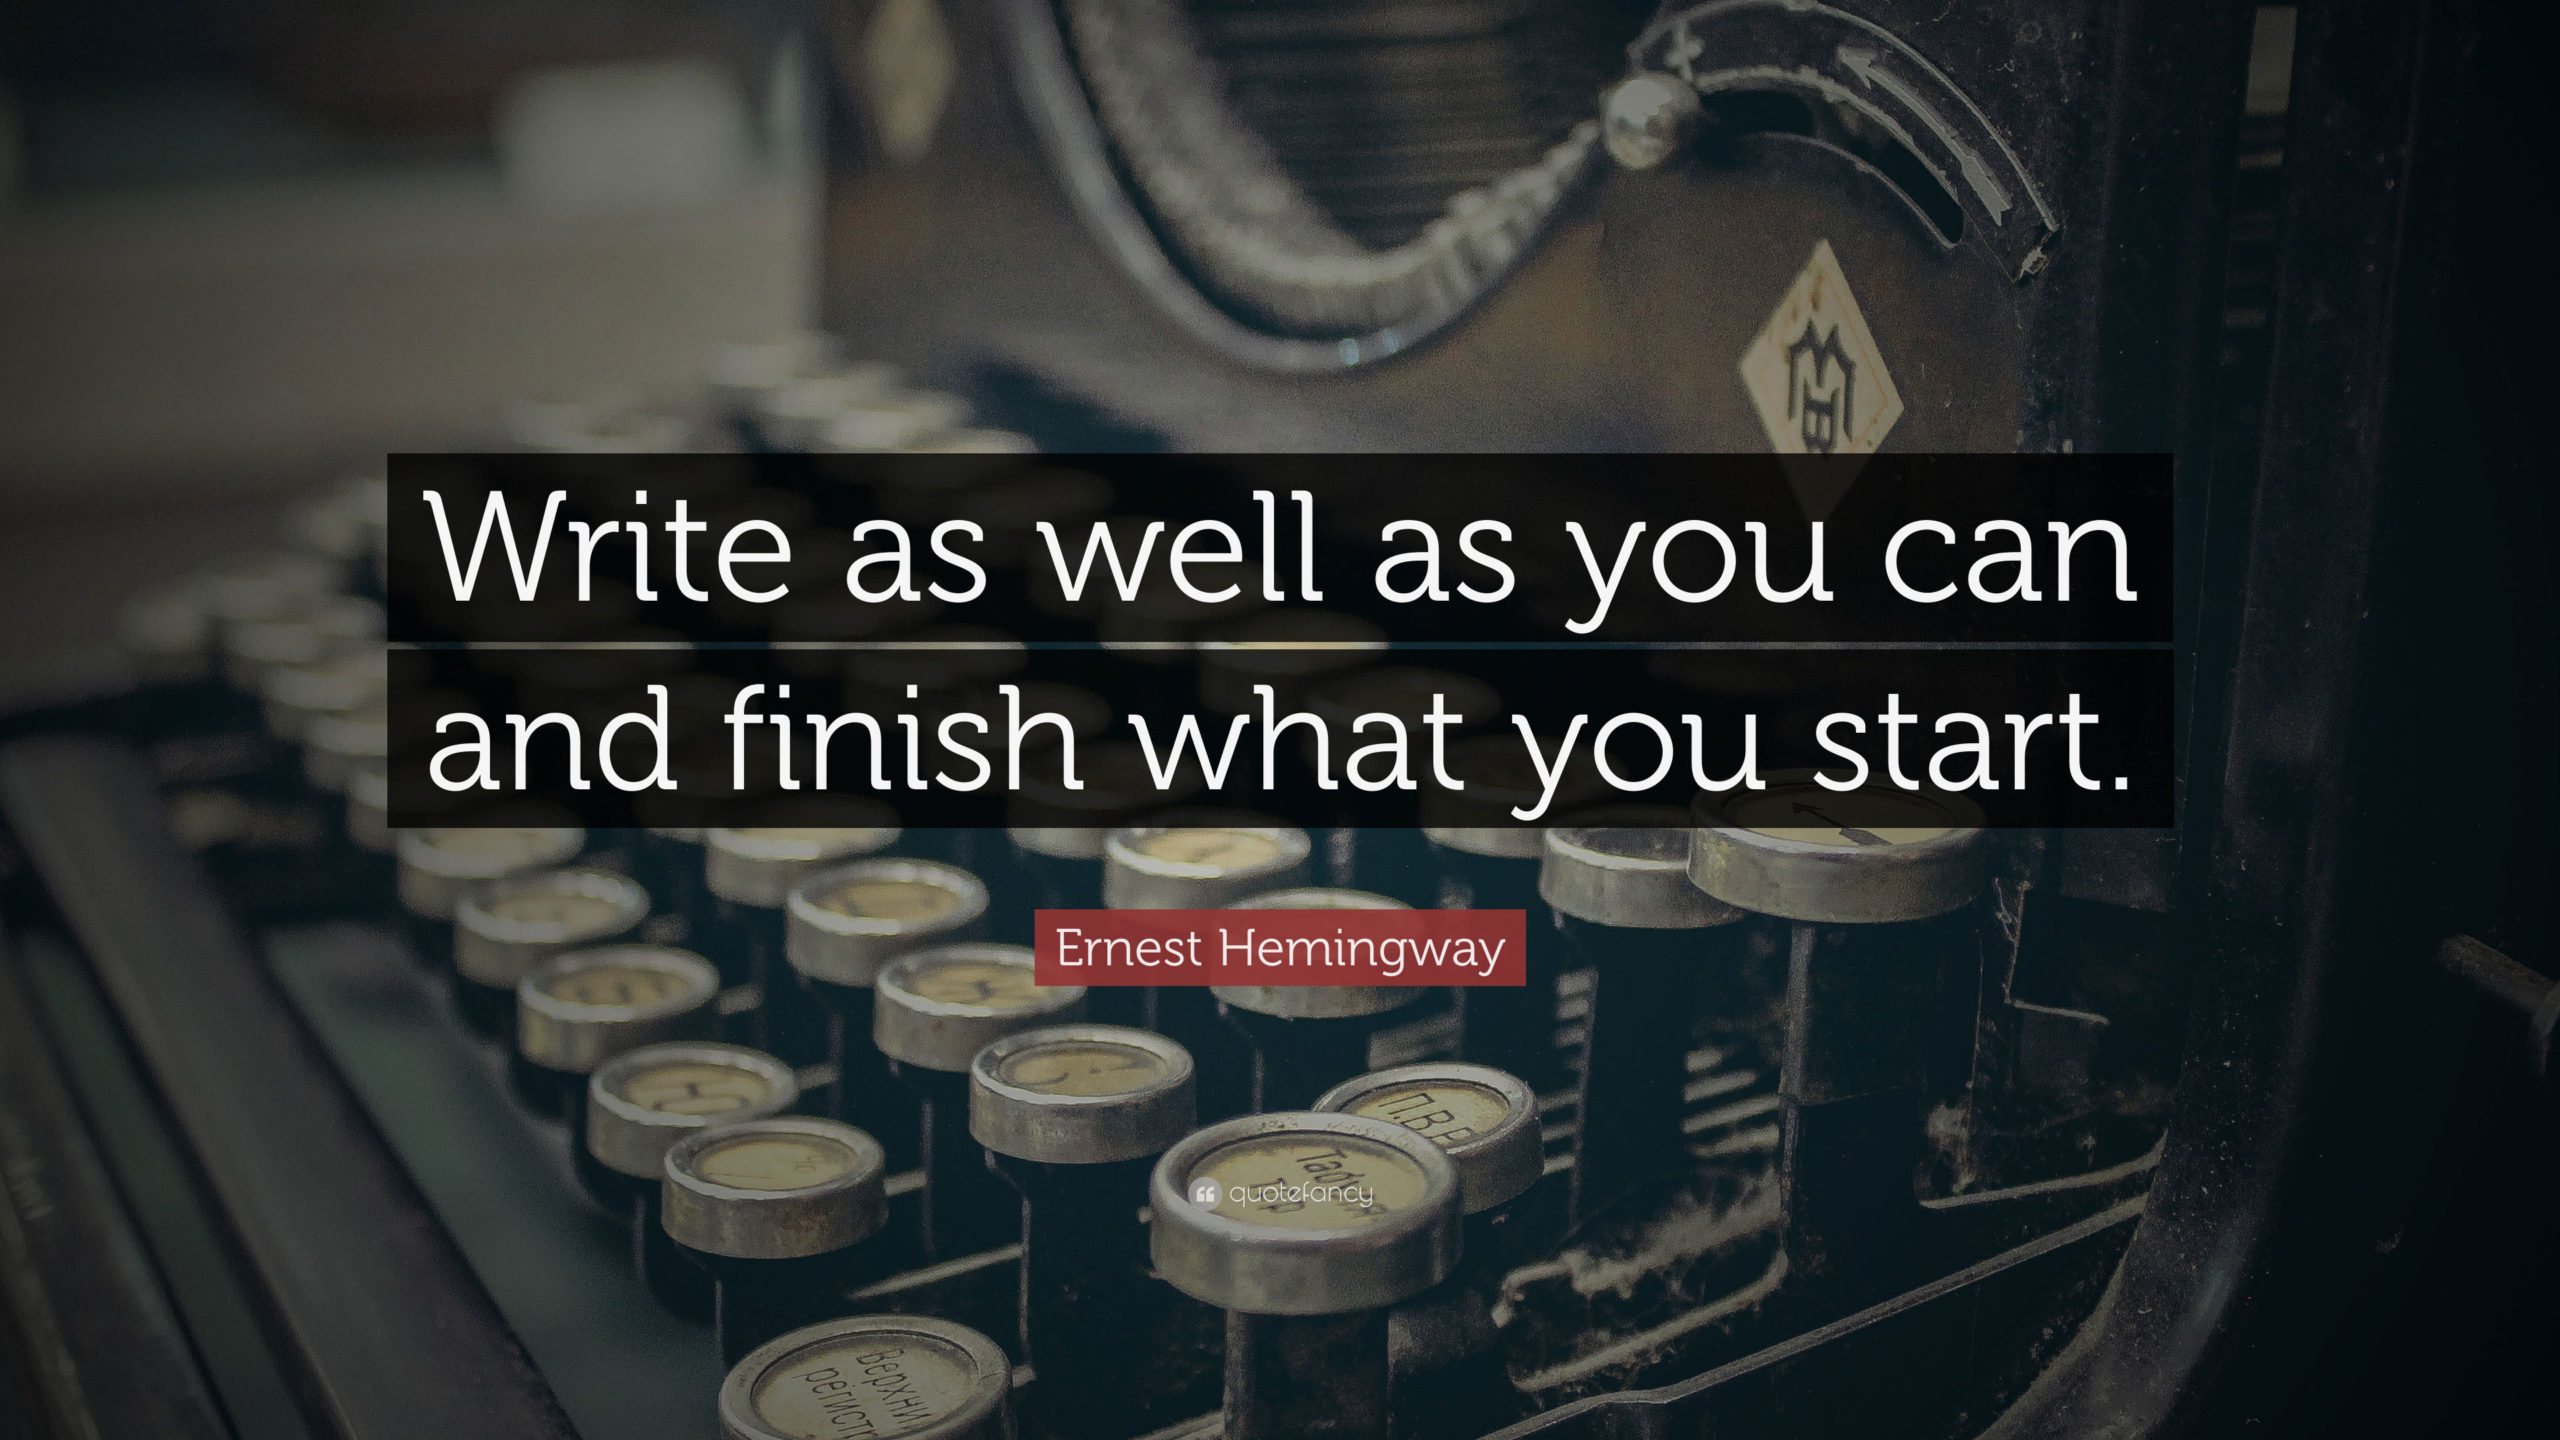 via https://quotefancy.com/quote/803703/Ernest-Hemingway-Write-as-well-as-you-can-and-finish-what-you-start